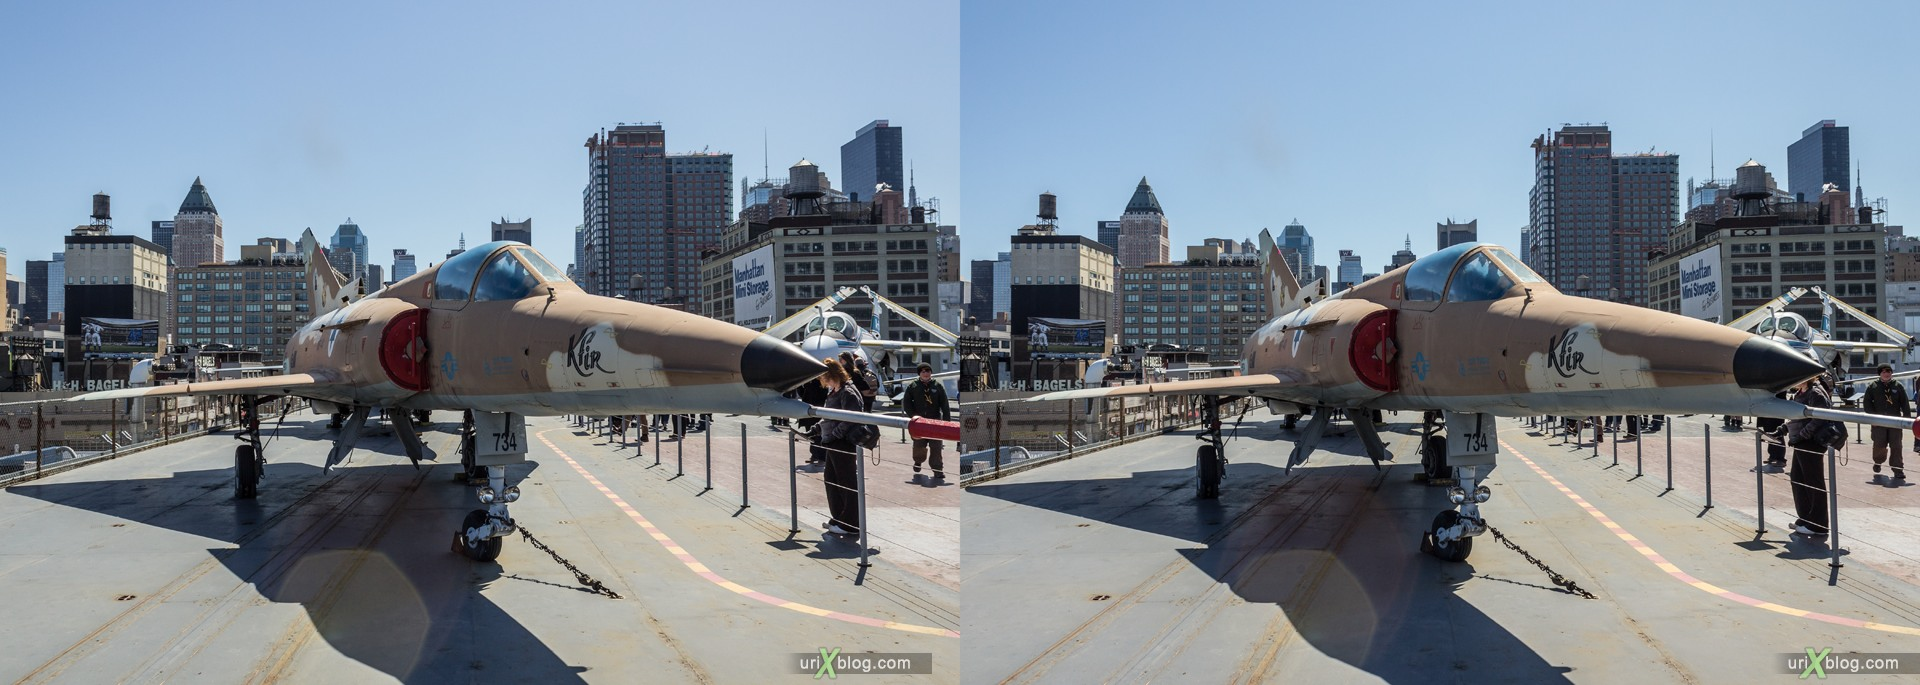 2013, USA, NYC, New York, aircraft carrier Intrepid museum, Israel Aircraft Industries Kfir, sea, air, space, ship, submarine, aircraft, airplane, helicopter, military, 3D, stereo pair, cross-eyed, crossview, cross view stereo pair, stereoscopic